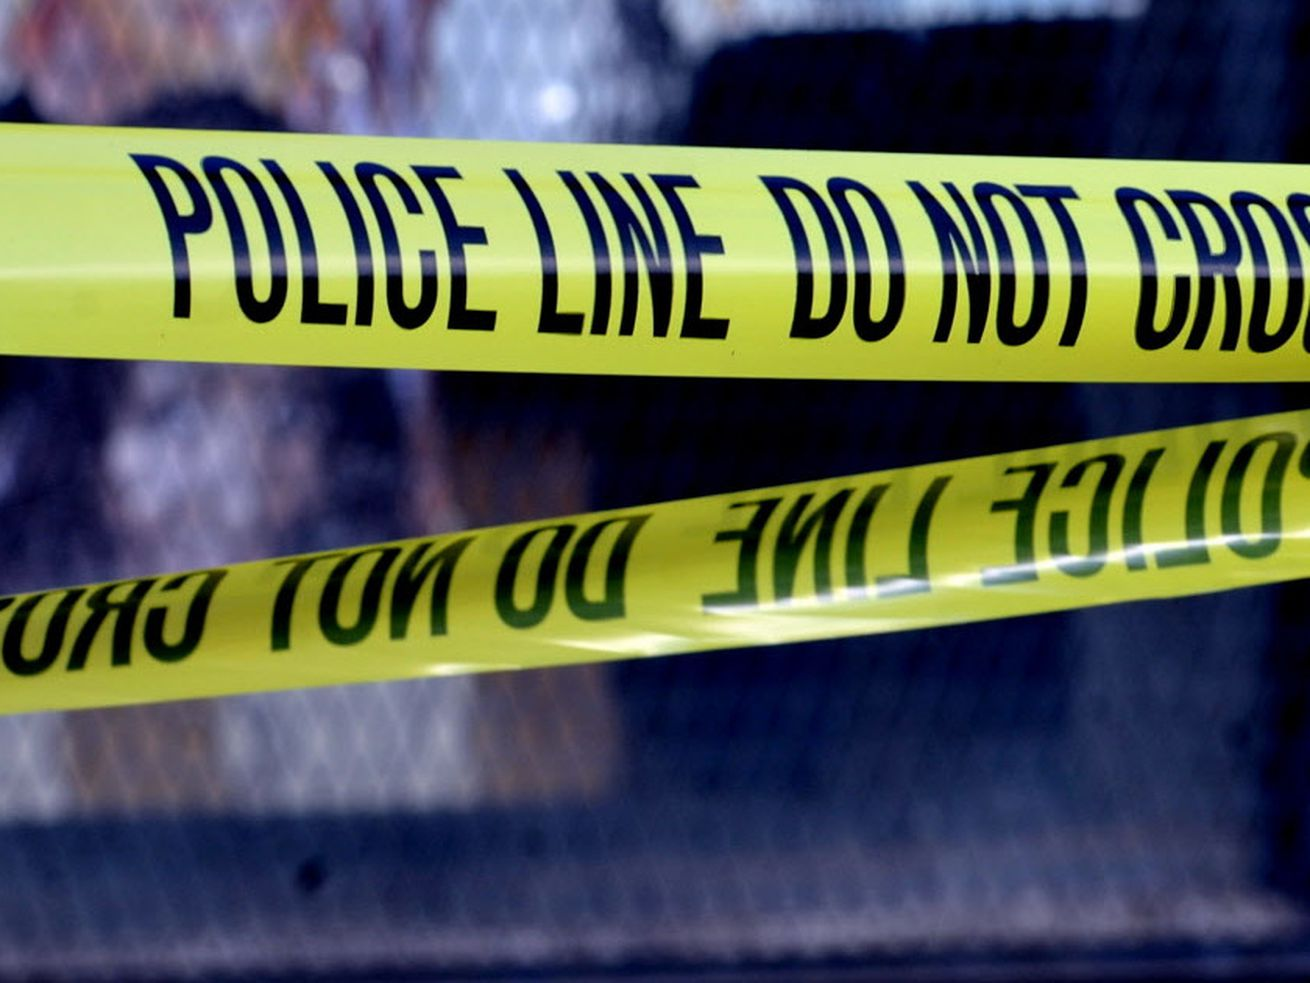 Five people were injured in a shooting April 12, 2021 on I-290.